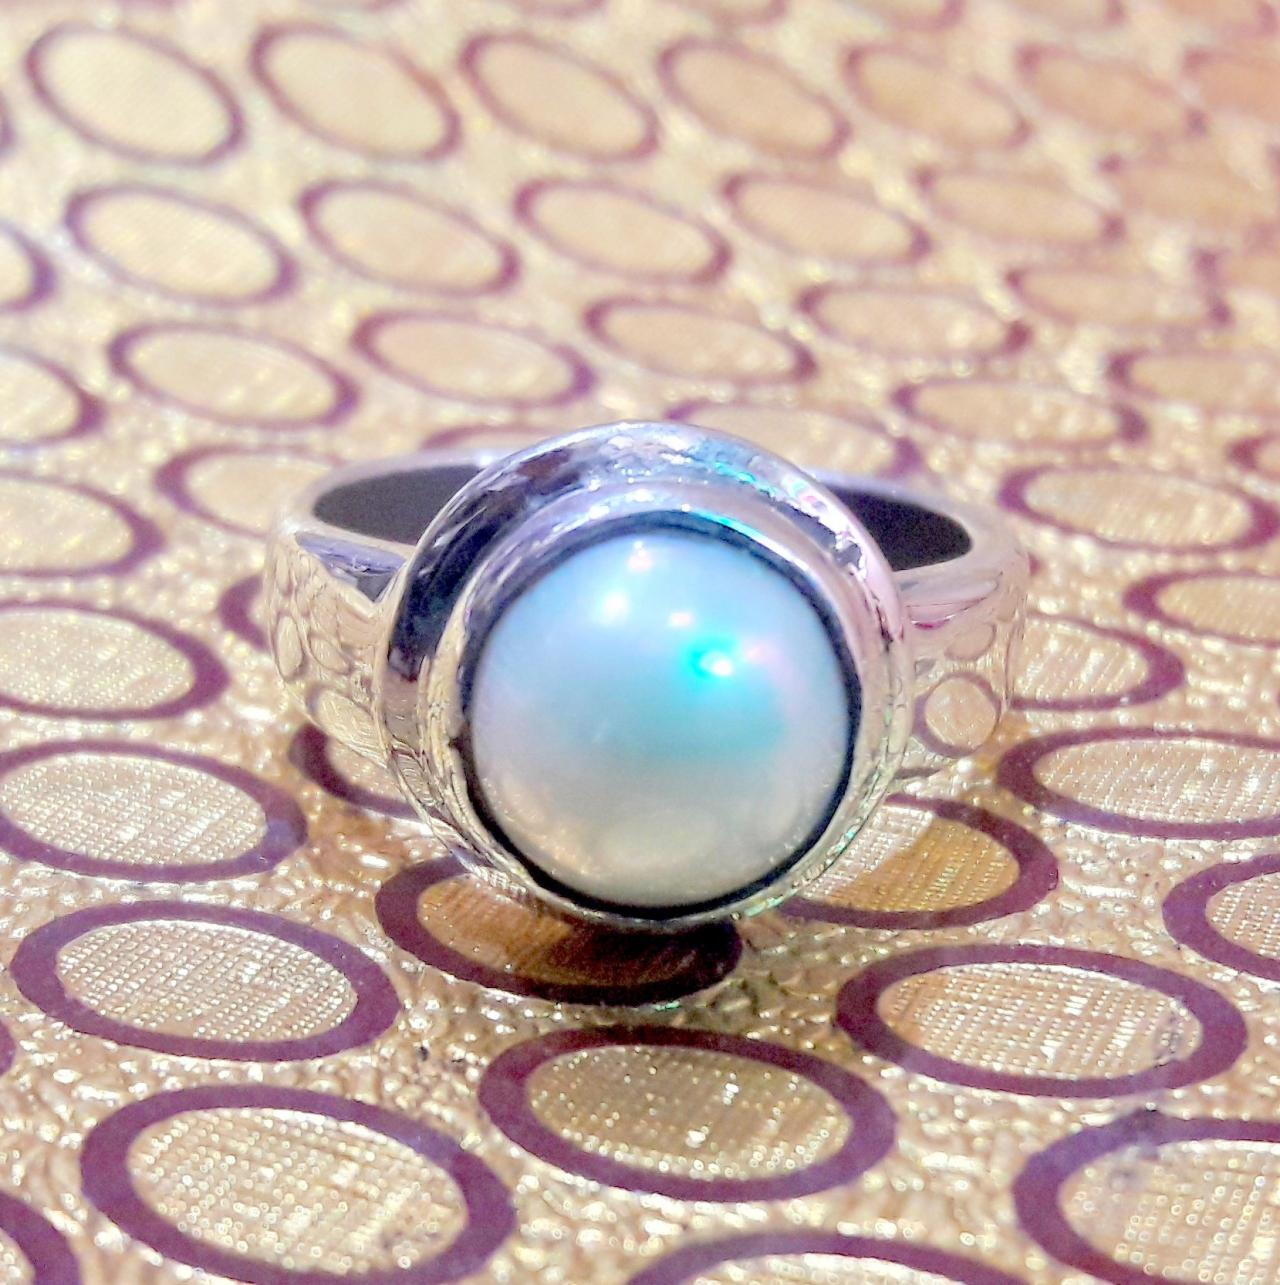 Pearl Ring 3, 925 Sterling Silver Ring, Handmade Ring, Round Gemstone, Gift For Her, Statement Ring